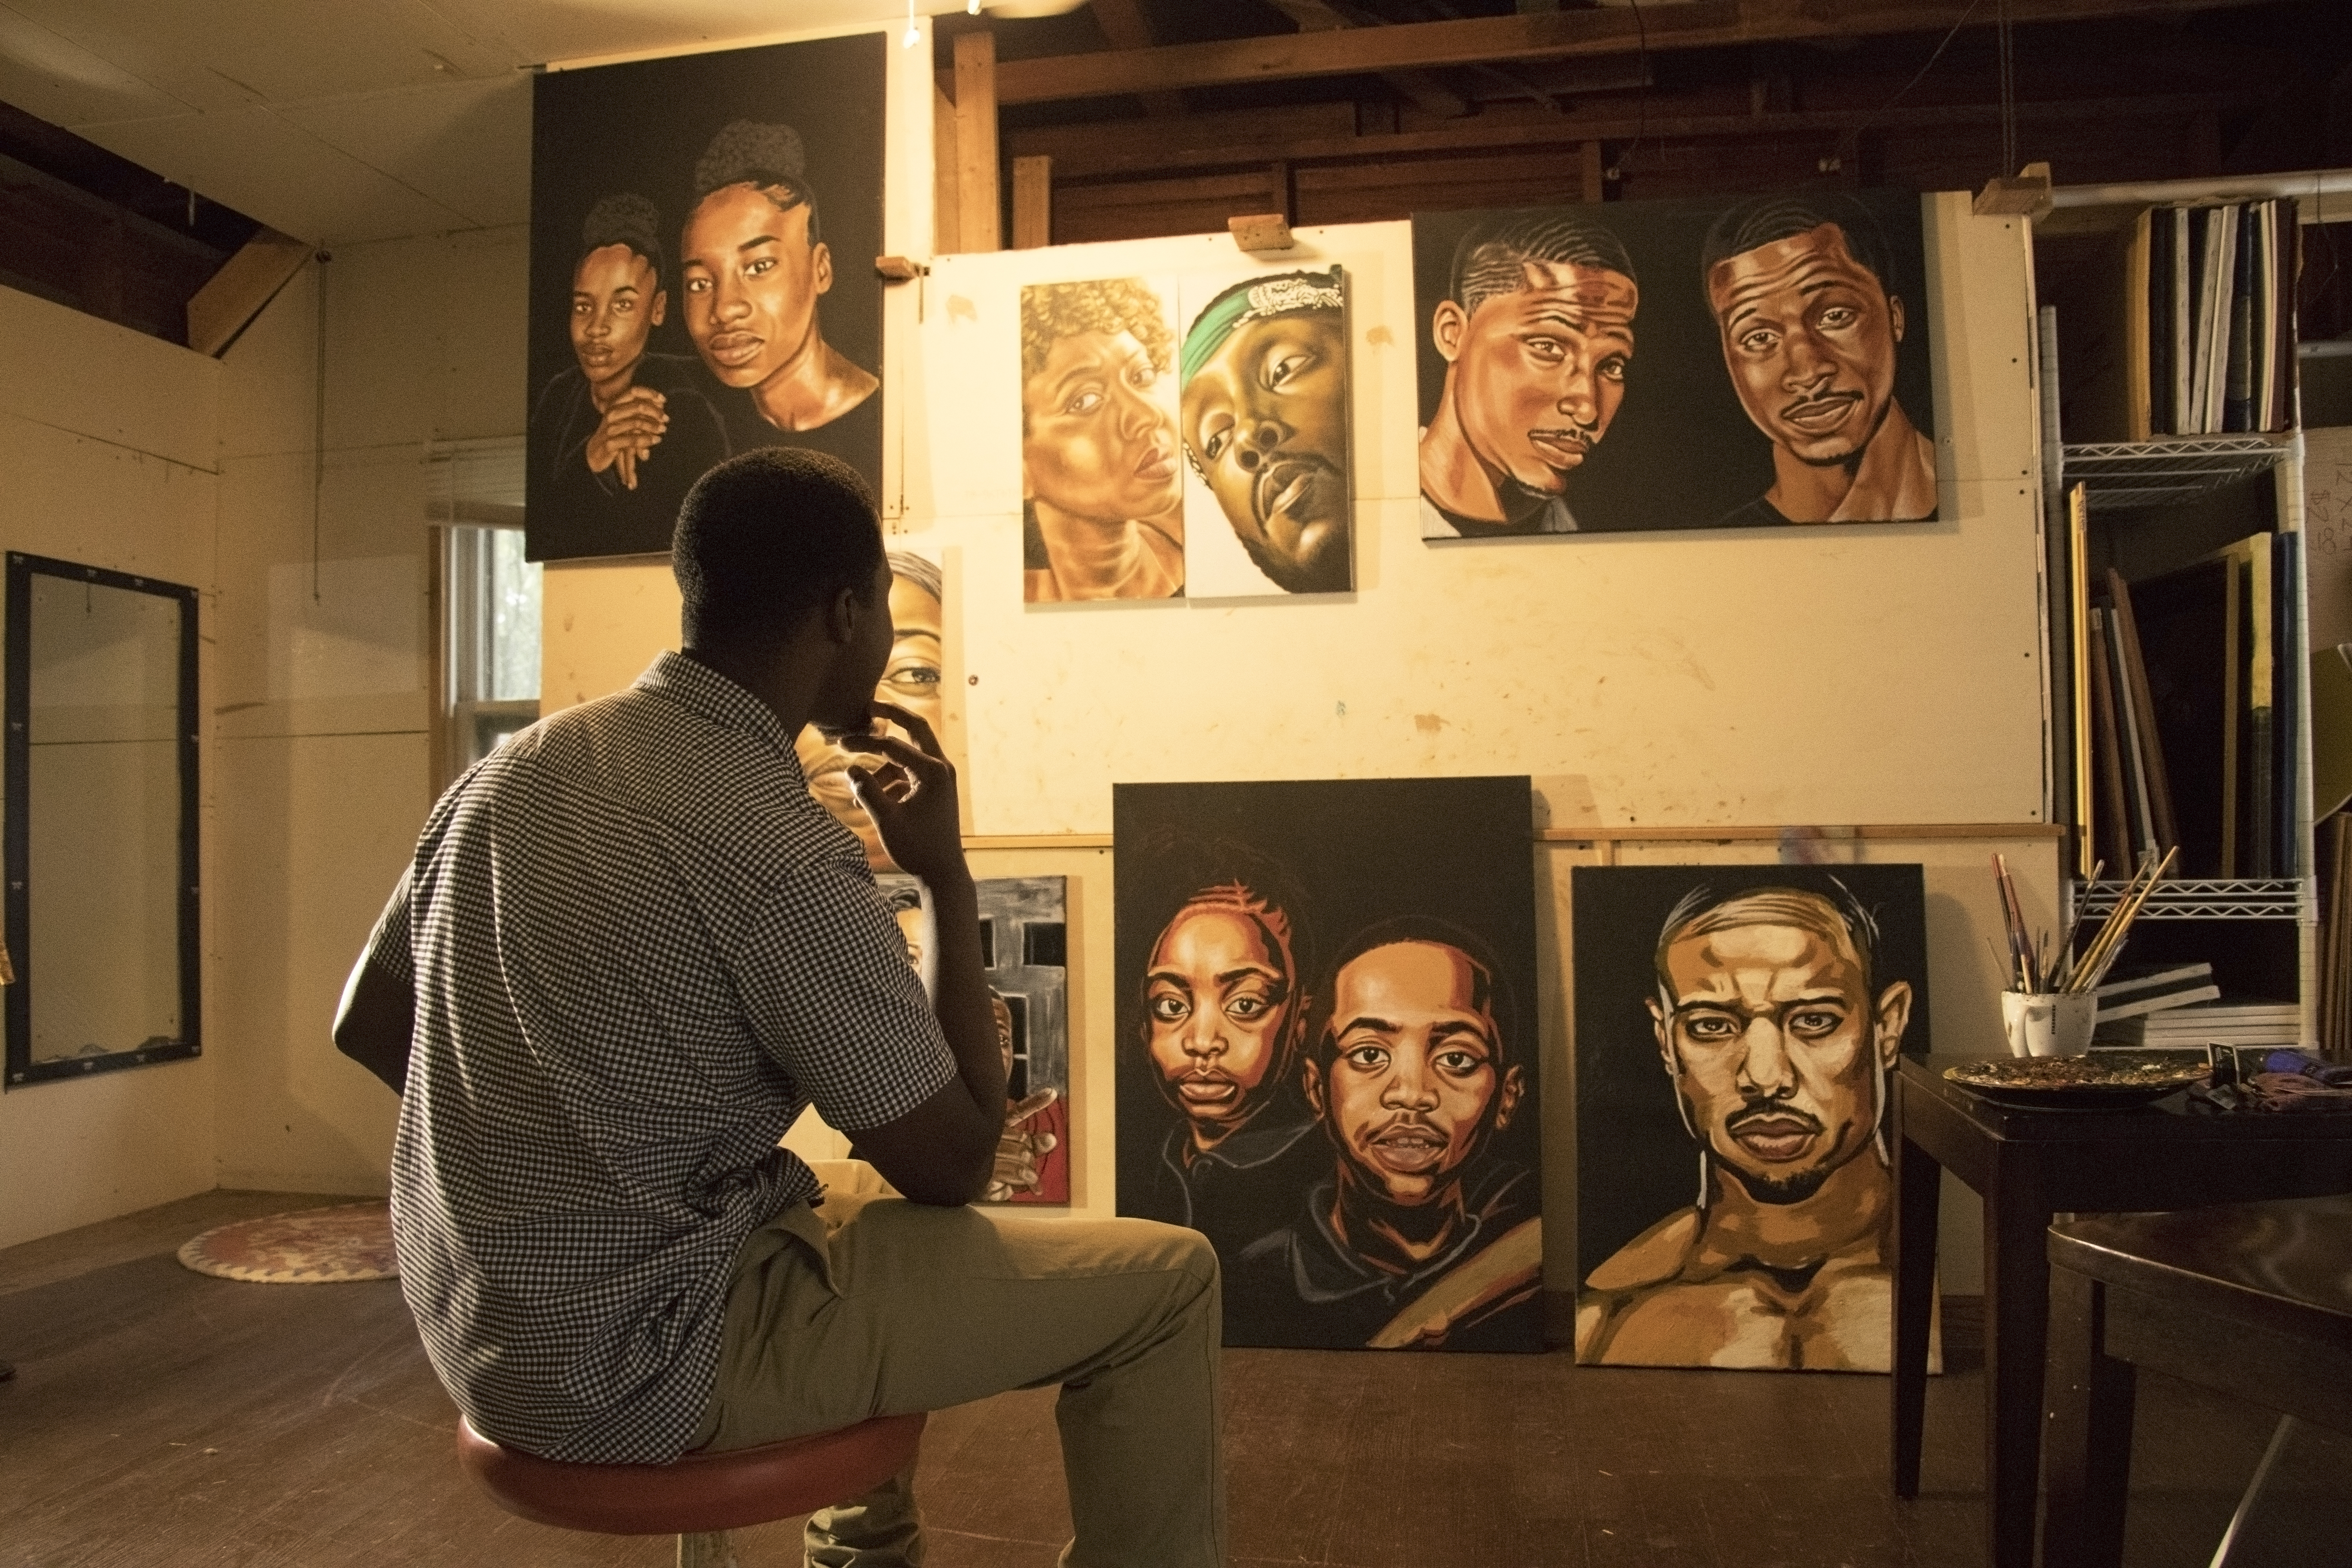 Kaldric Dow gazing at some of his works from East Side Portraits.